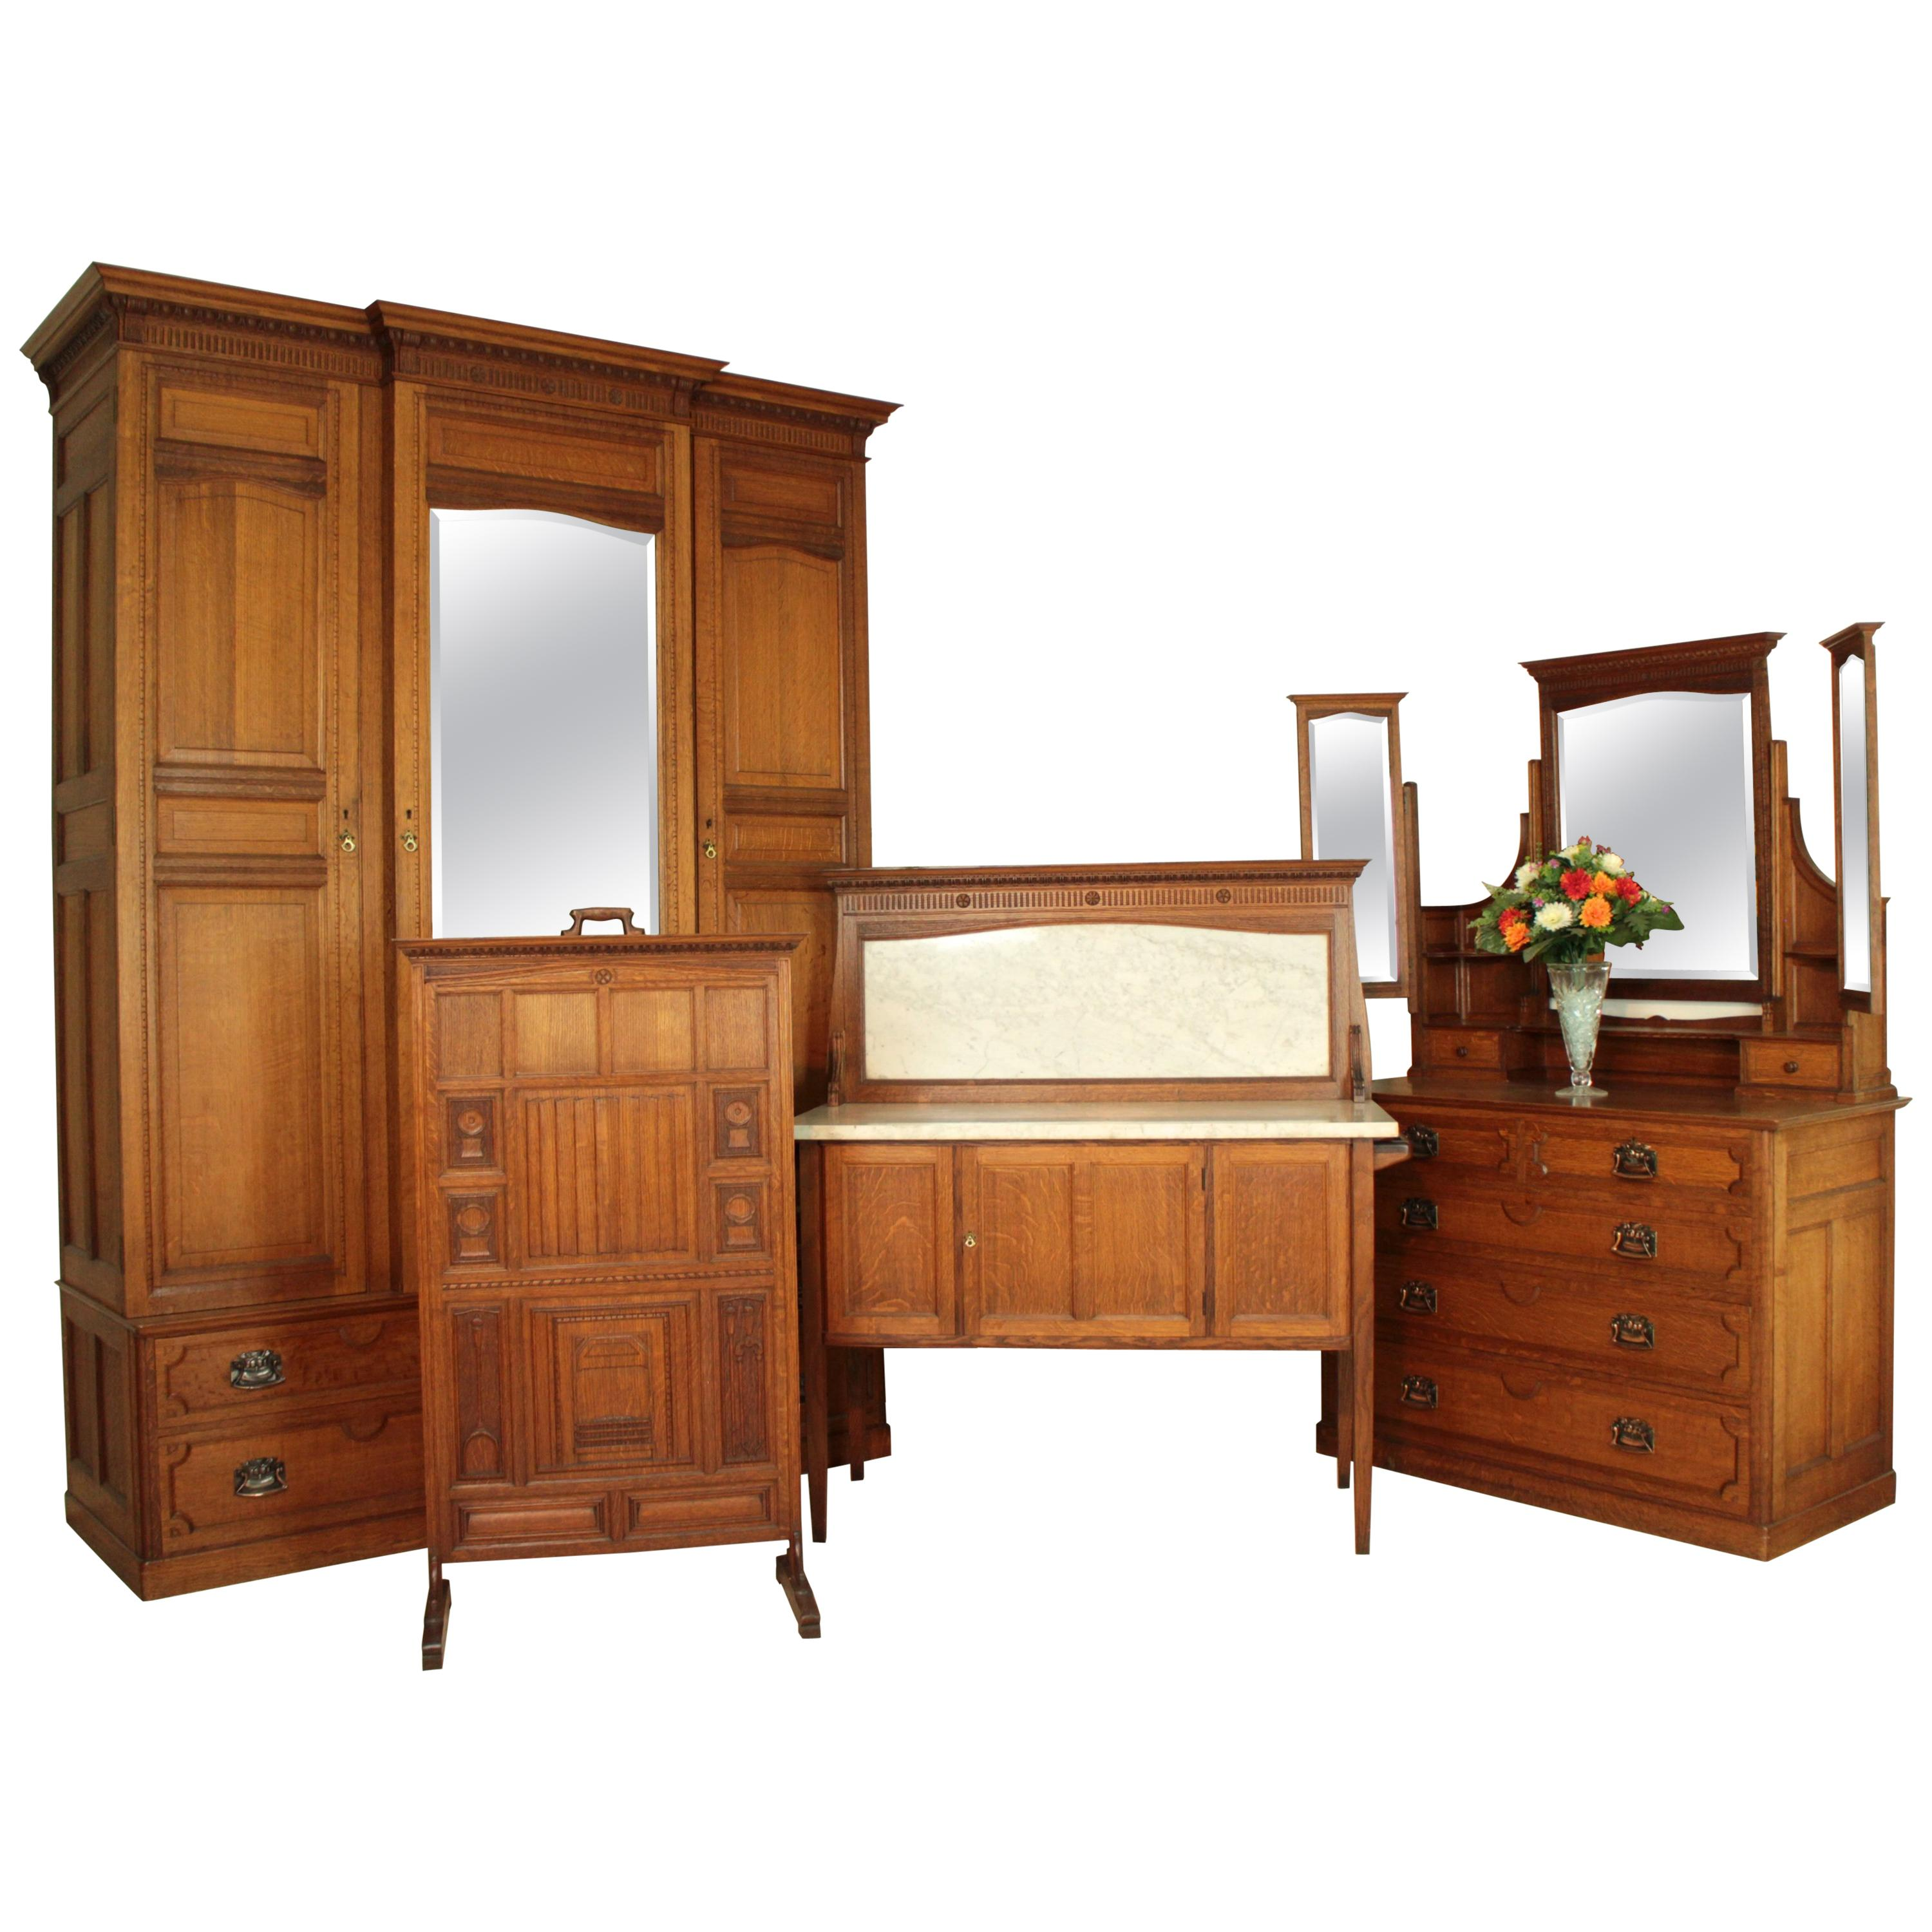 Arts and Crafts Antique English Oak Bedroom Suite, Attributed to ...